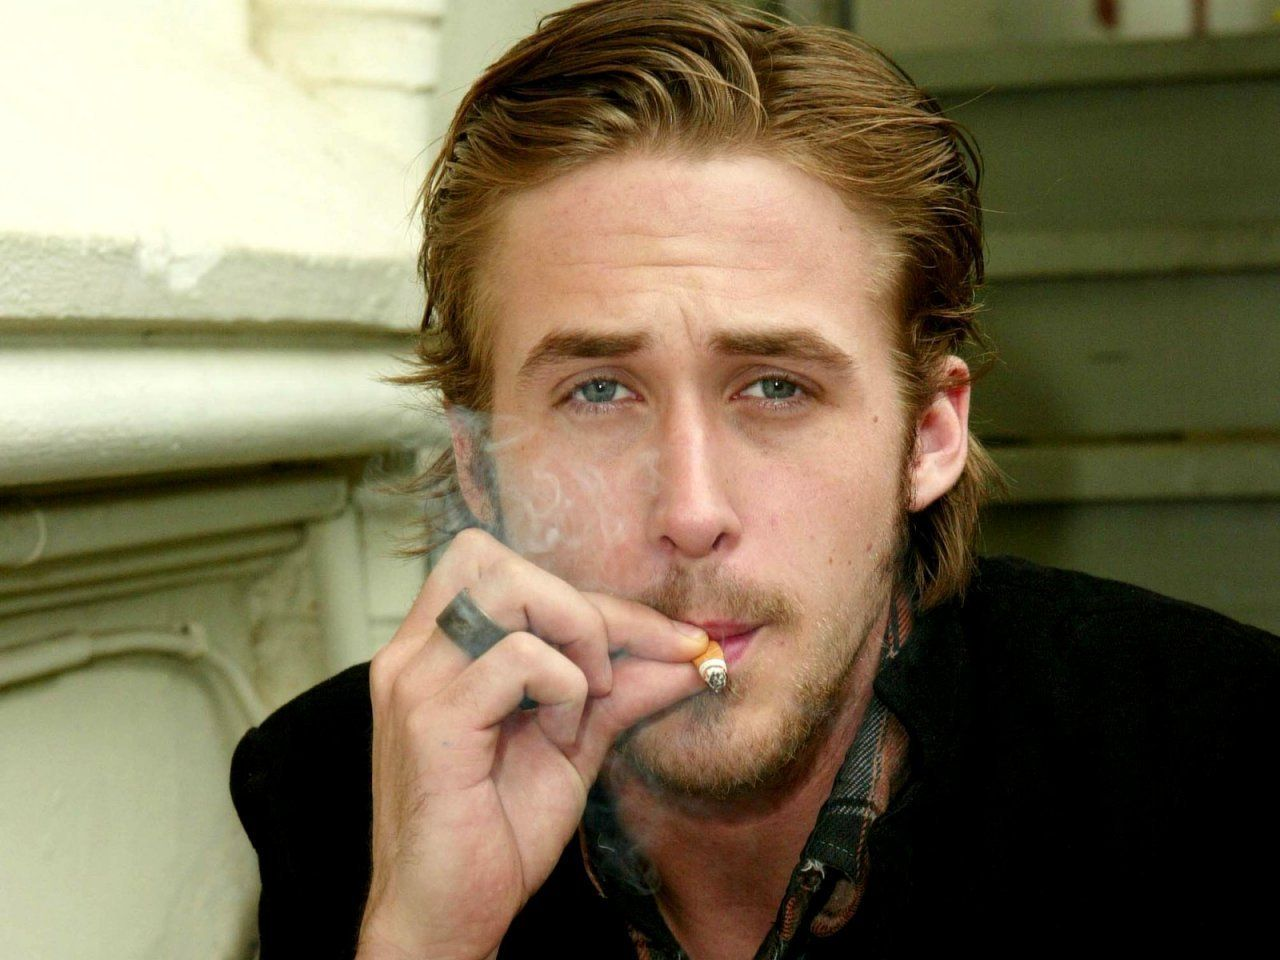 Ryan Gosling Wallpapers Photos Images in HD